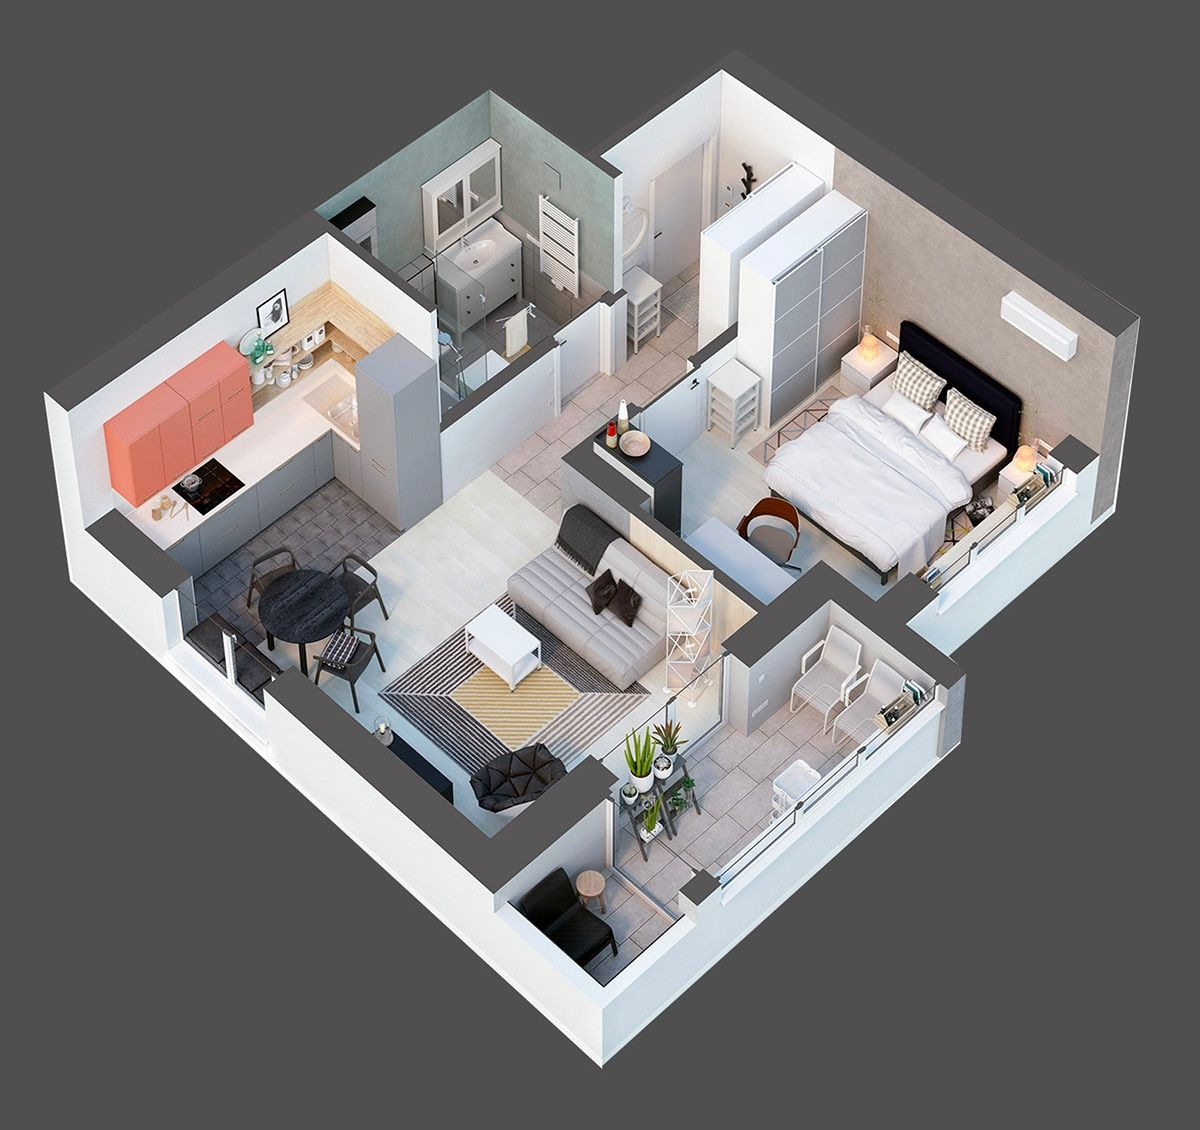 4 Small Apartment Designs Under 50 Square Meters Small Apartment Design Apartment Layout Small Apartment Plans